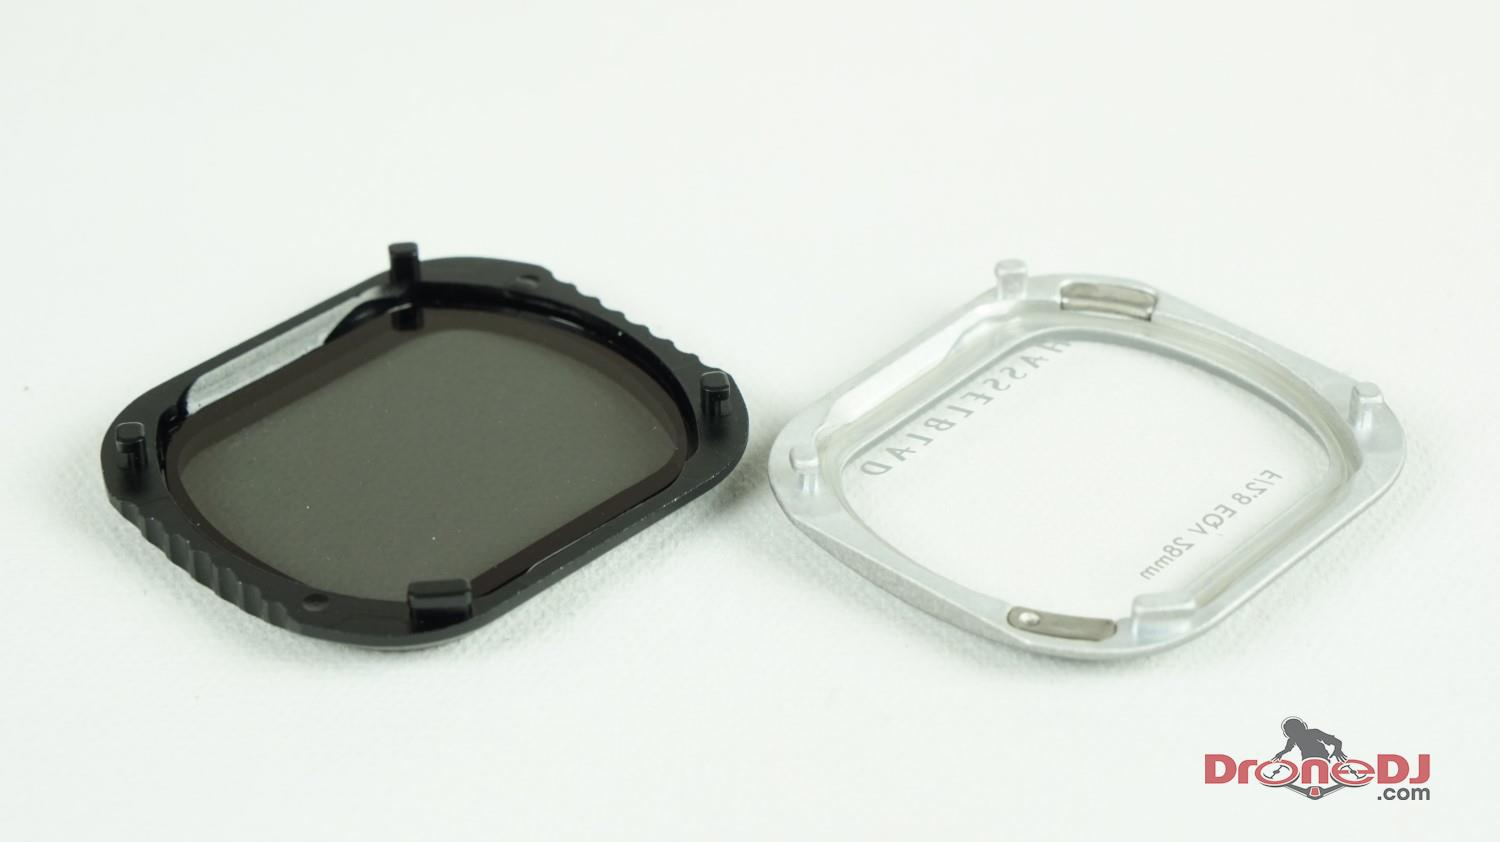 Mavic 2 Pro Filter from freewell build quality